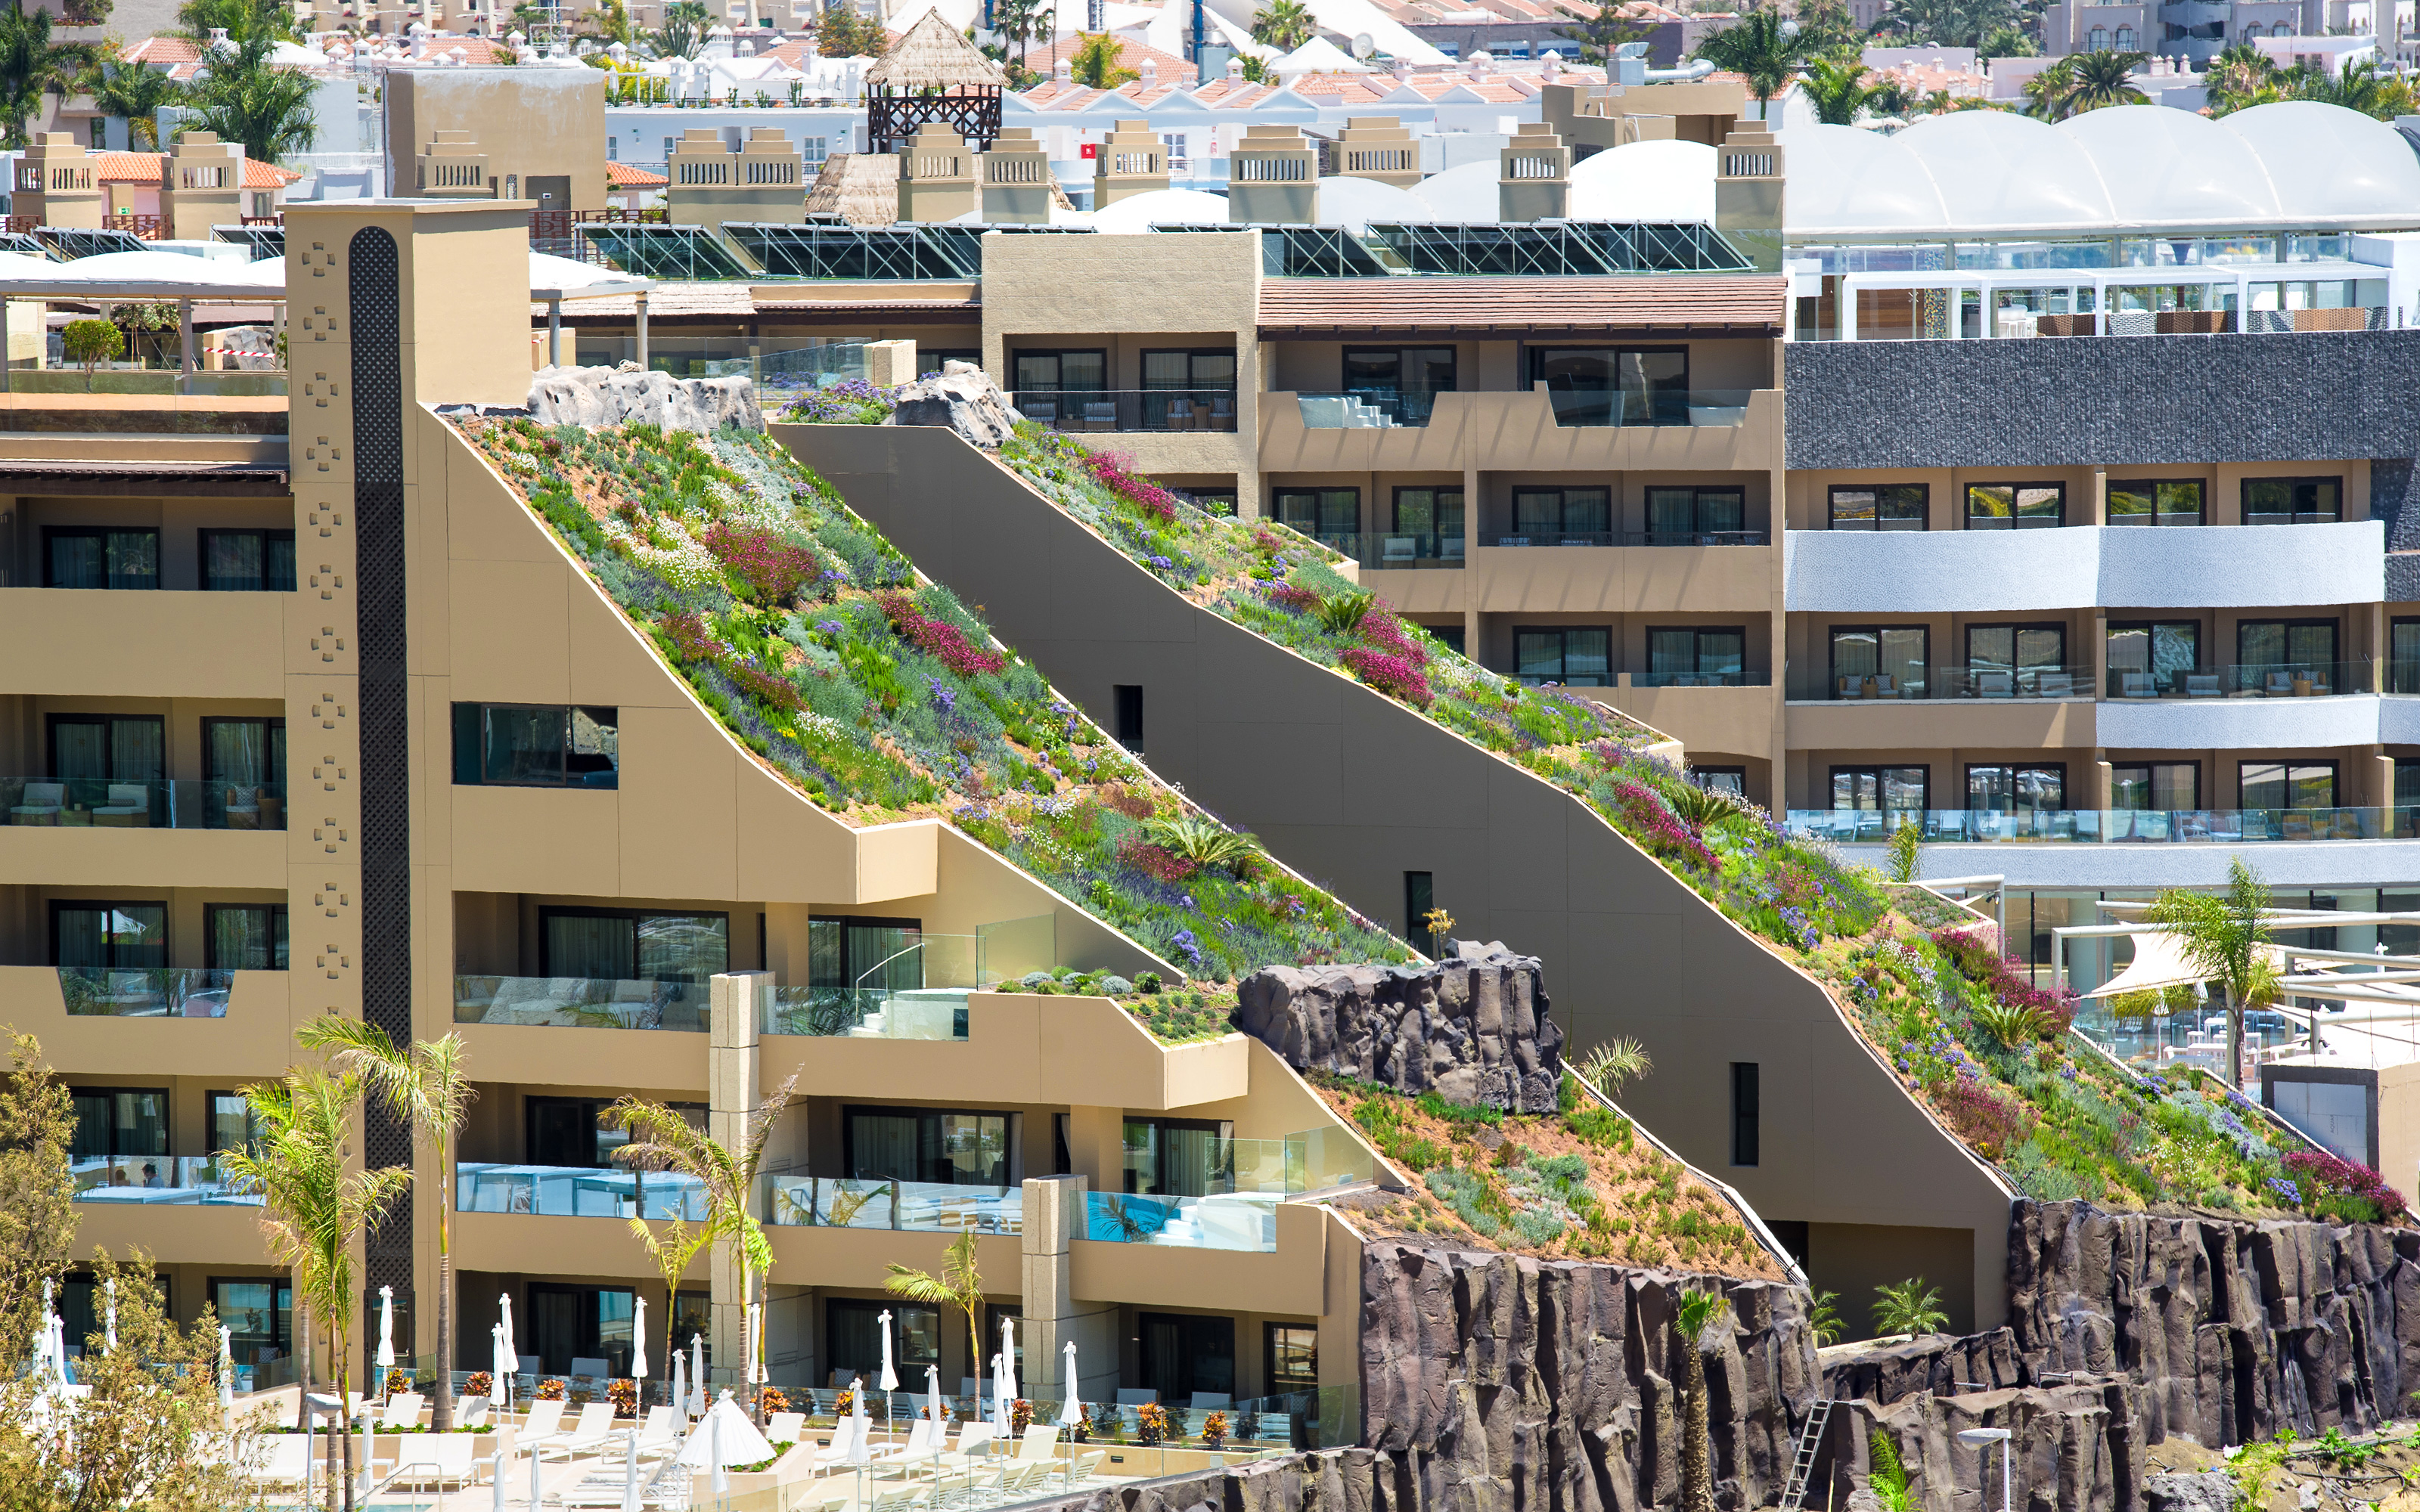 Hotel building with two steep pitched green roofs